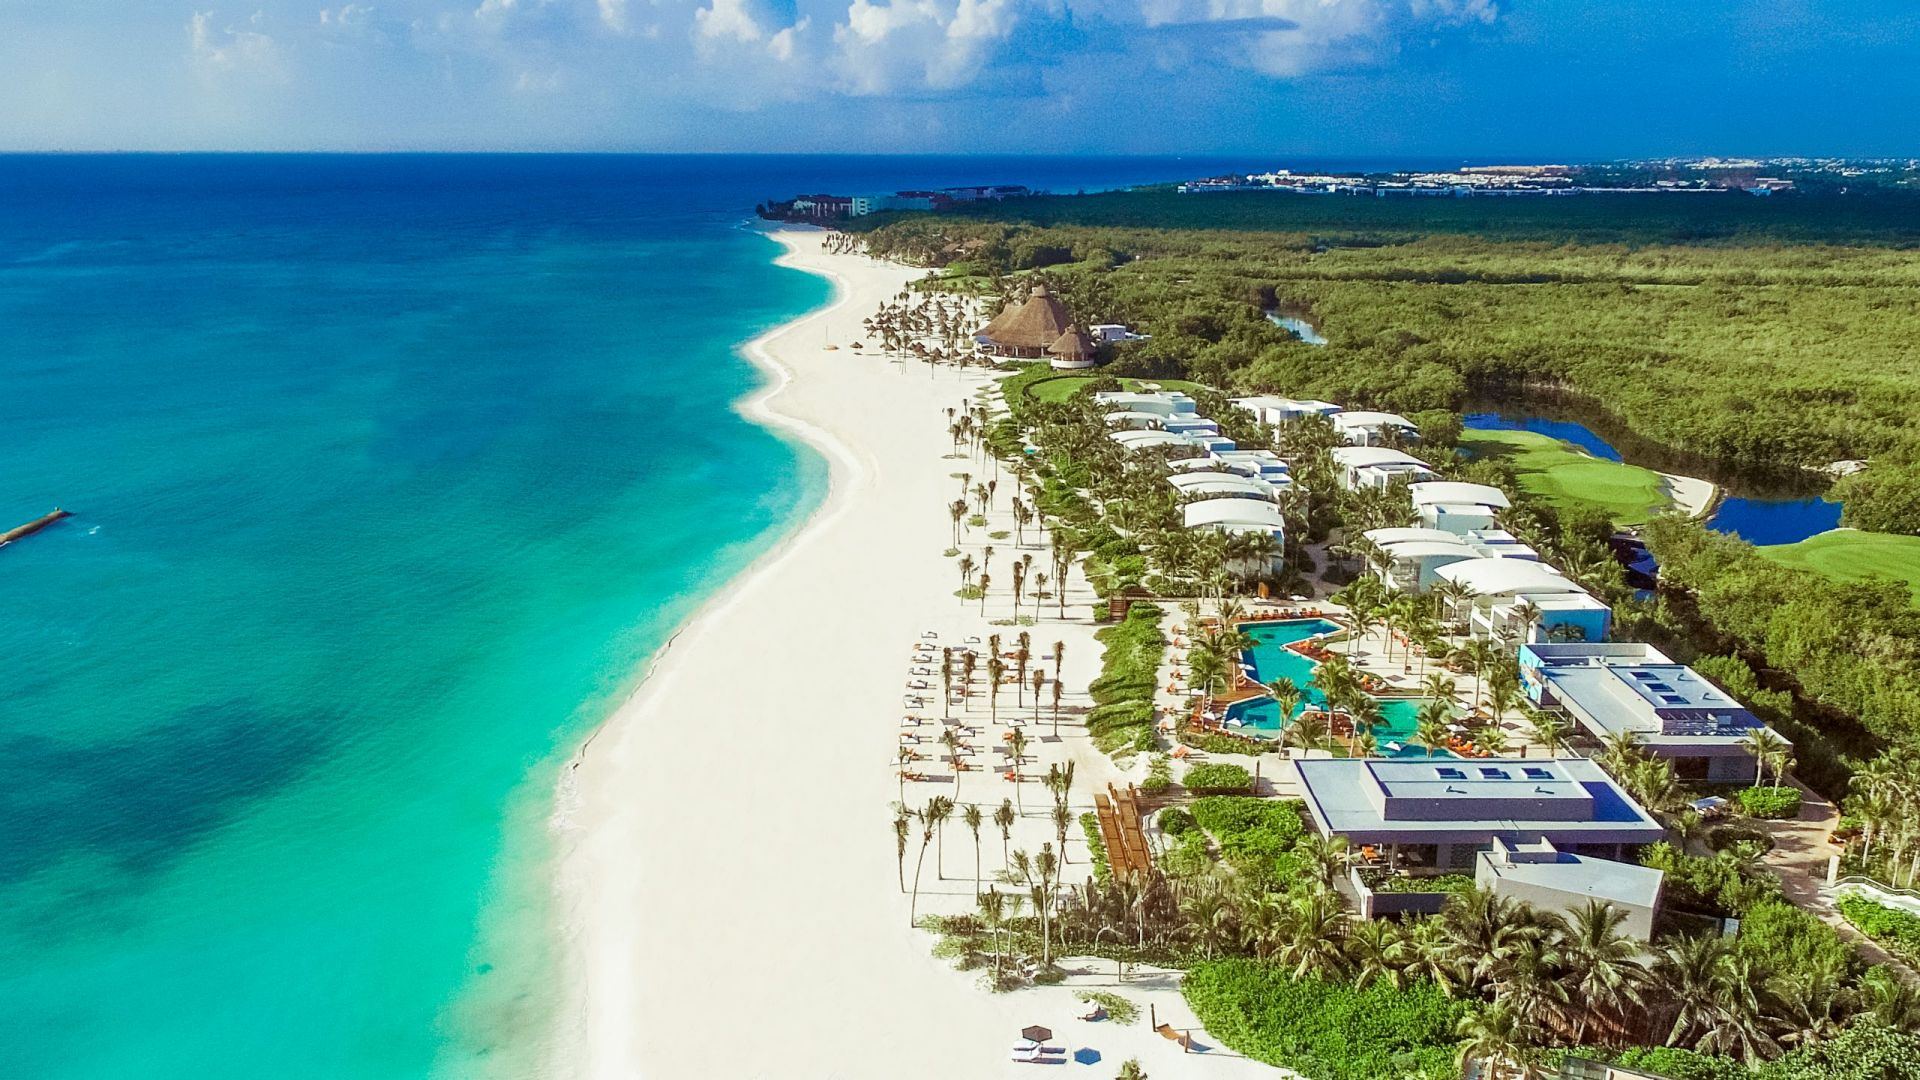 February 12-18, 2020 - Join us for a luxurious getaway to Playa Del Carmen, Mexico!